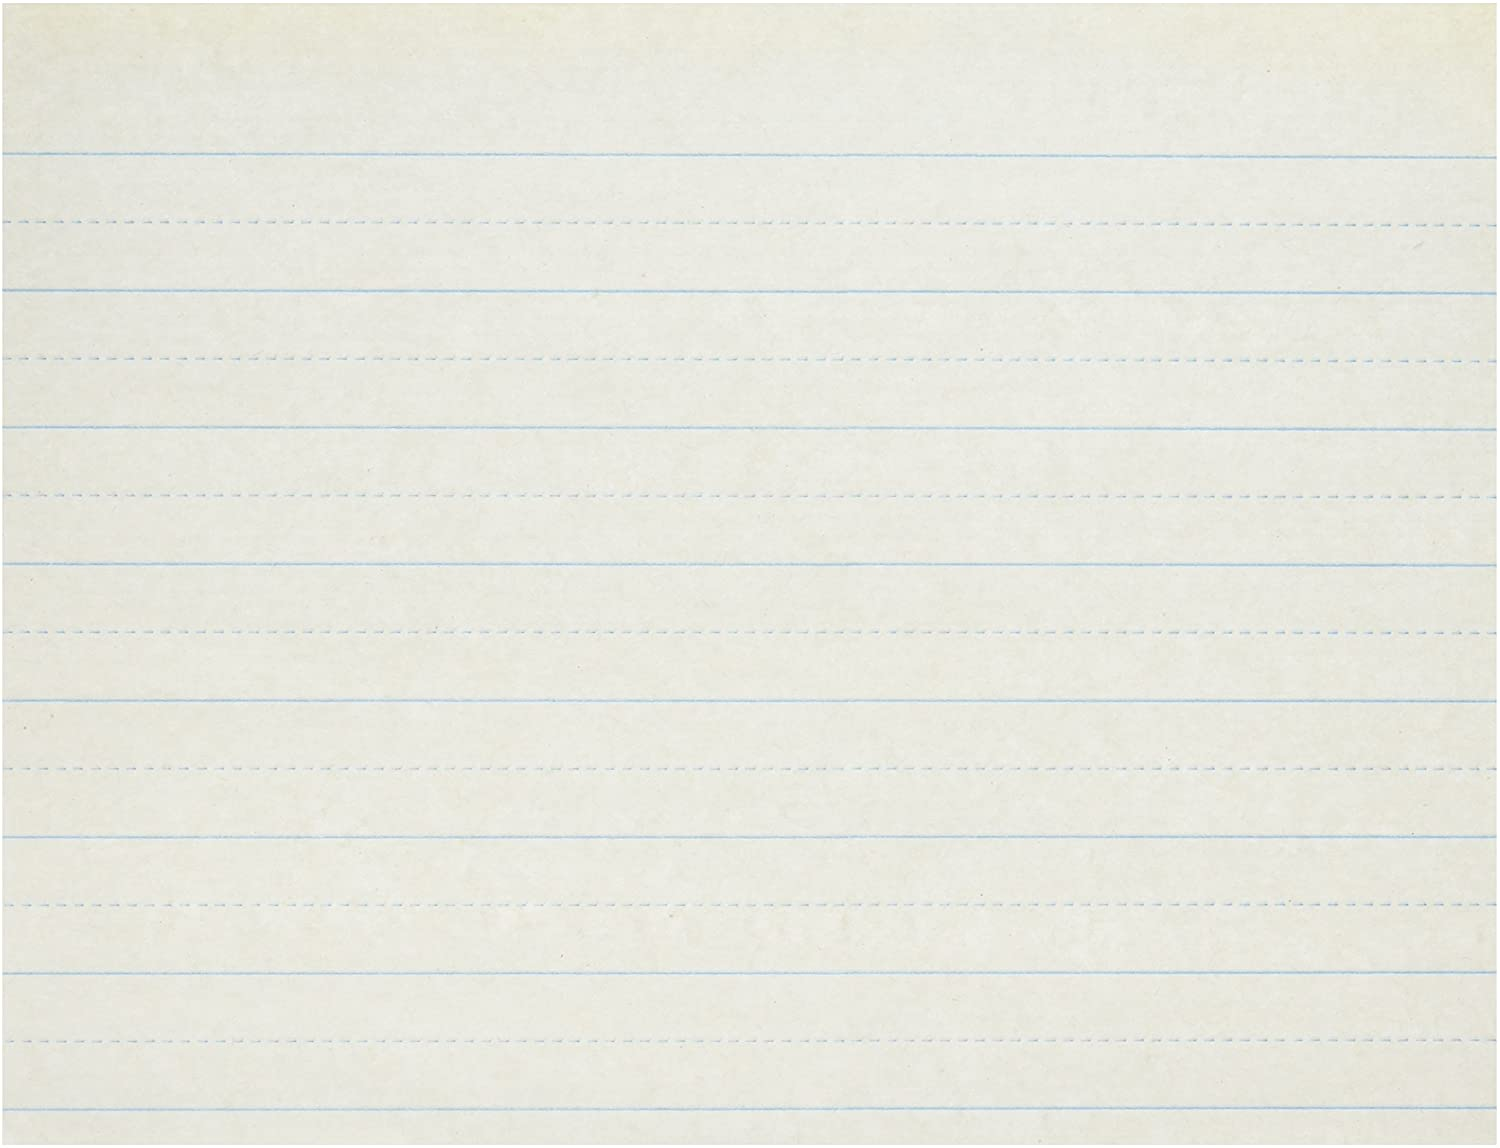 School Smart Alternate Ruled Writing Paper, 1 Inch Ruled Long Way, 11 x 8-1/2 Inches, Pack of 500